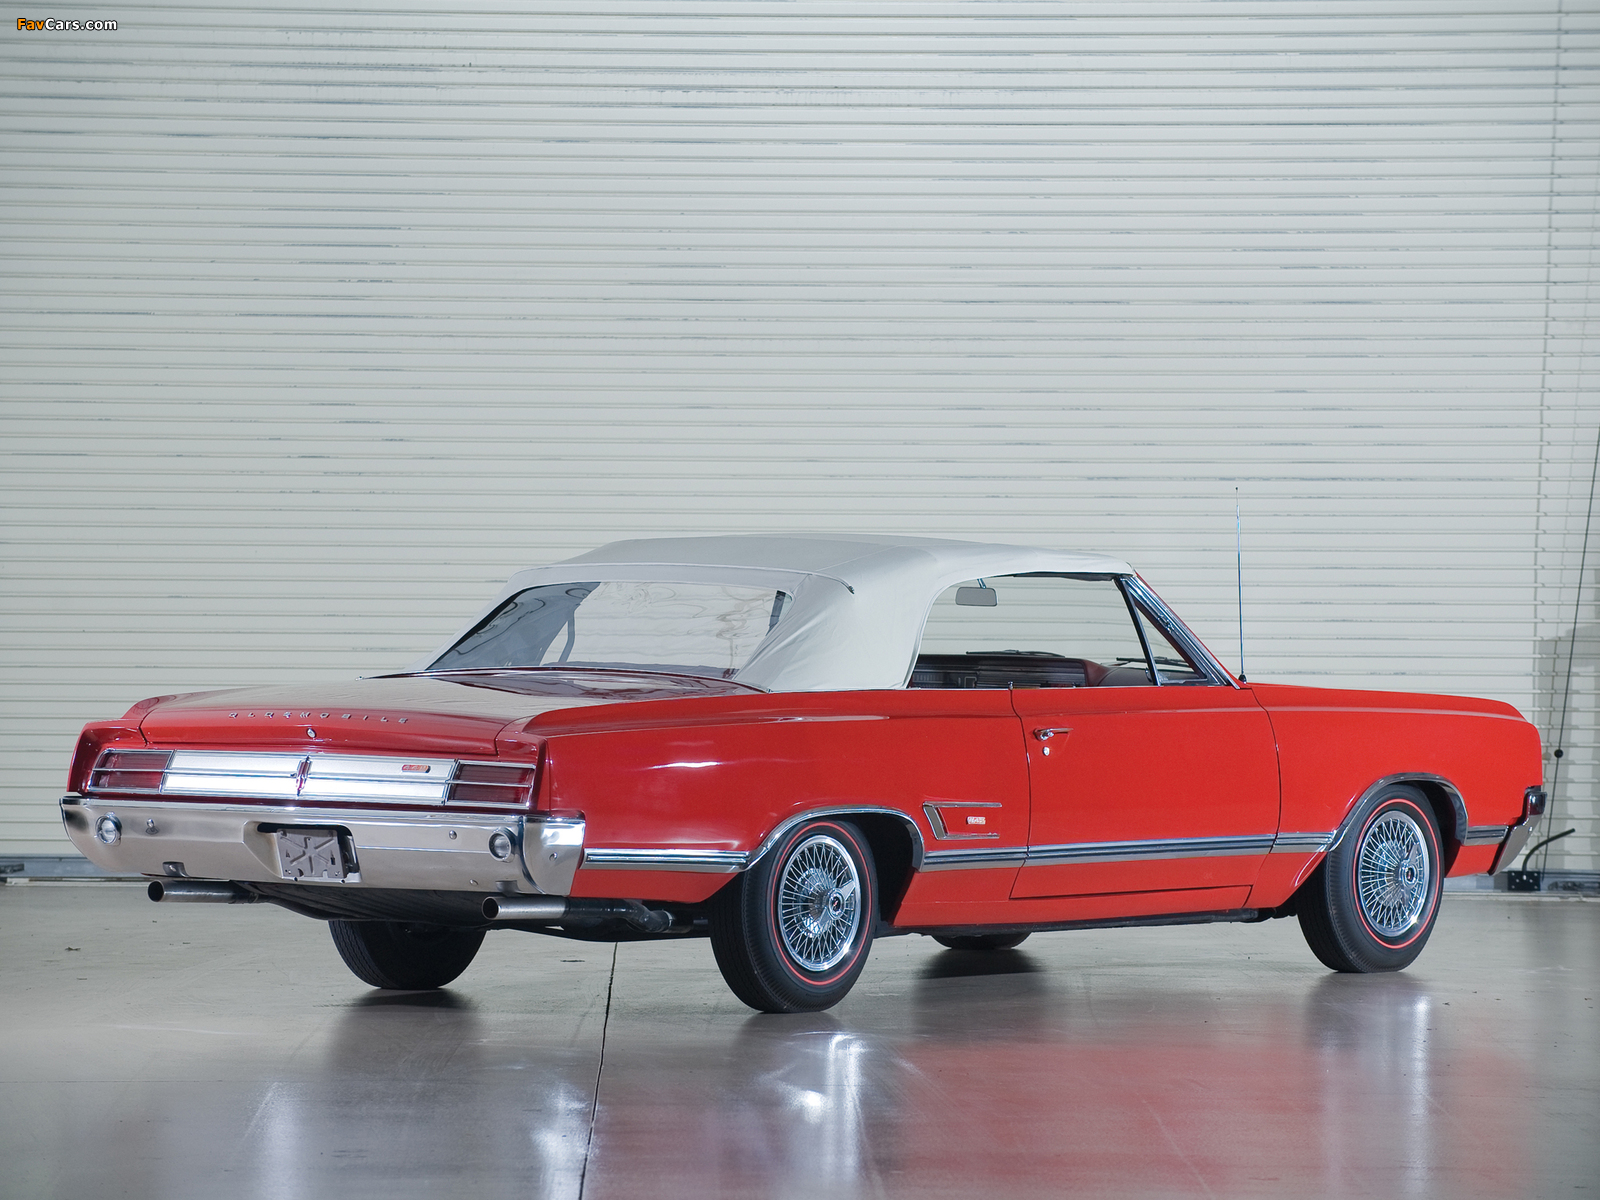 Oldsmobile Cutlass 442 Convertible 1965 images (1600 x 1200)